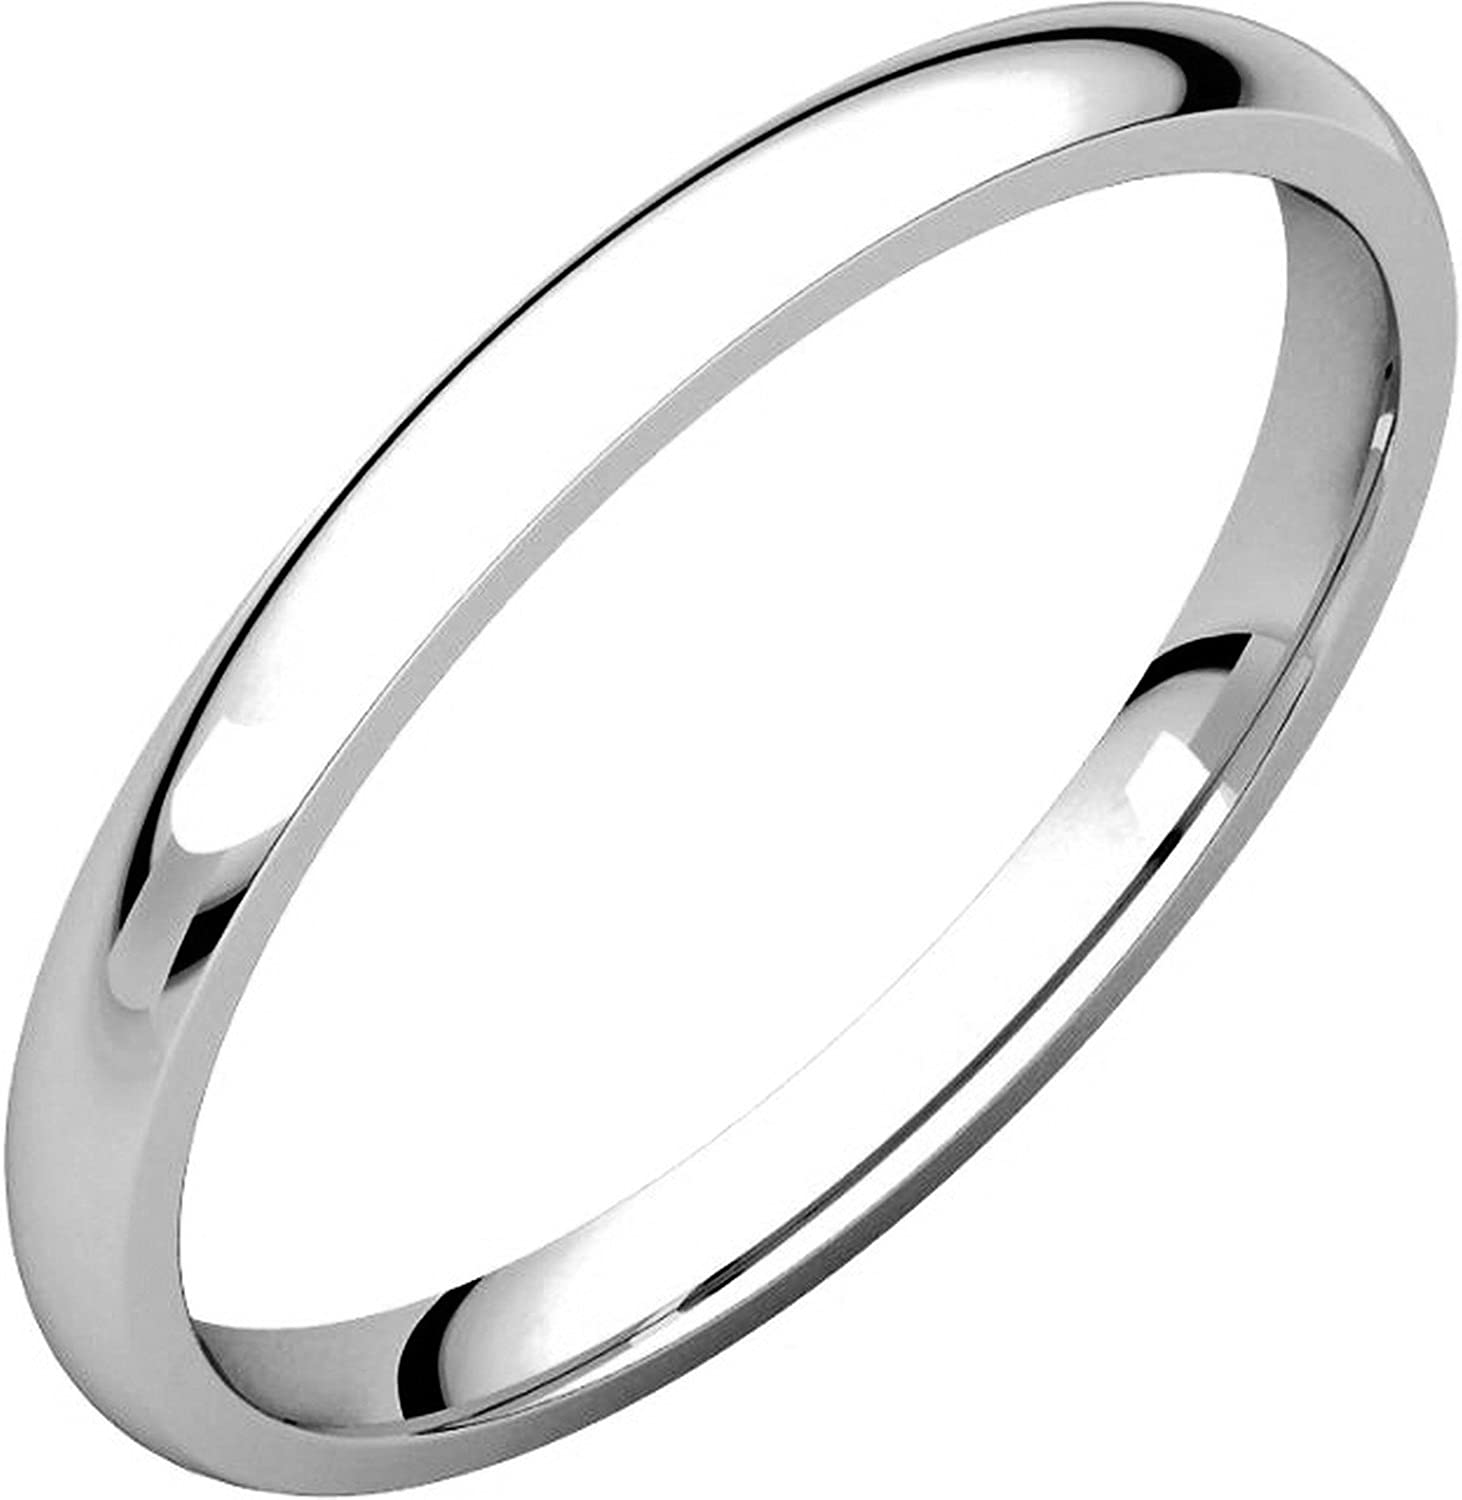 Plain Wedding Band Mens and Womens 14k White Gold Comfort Fit 2mm Wide